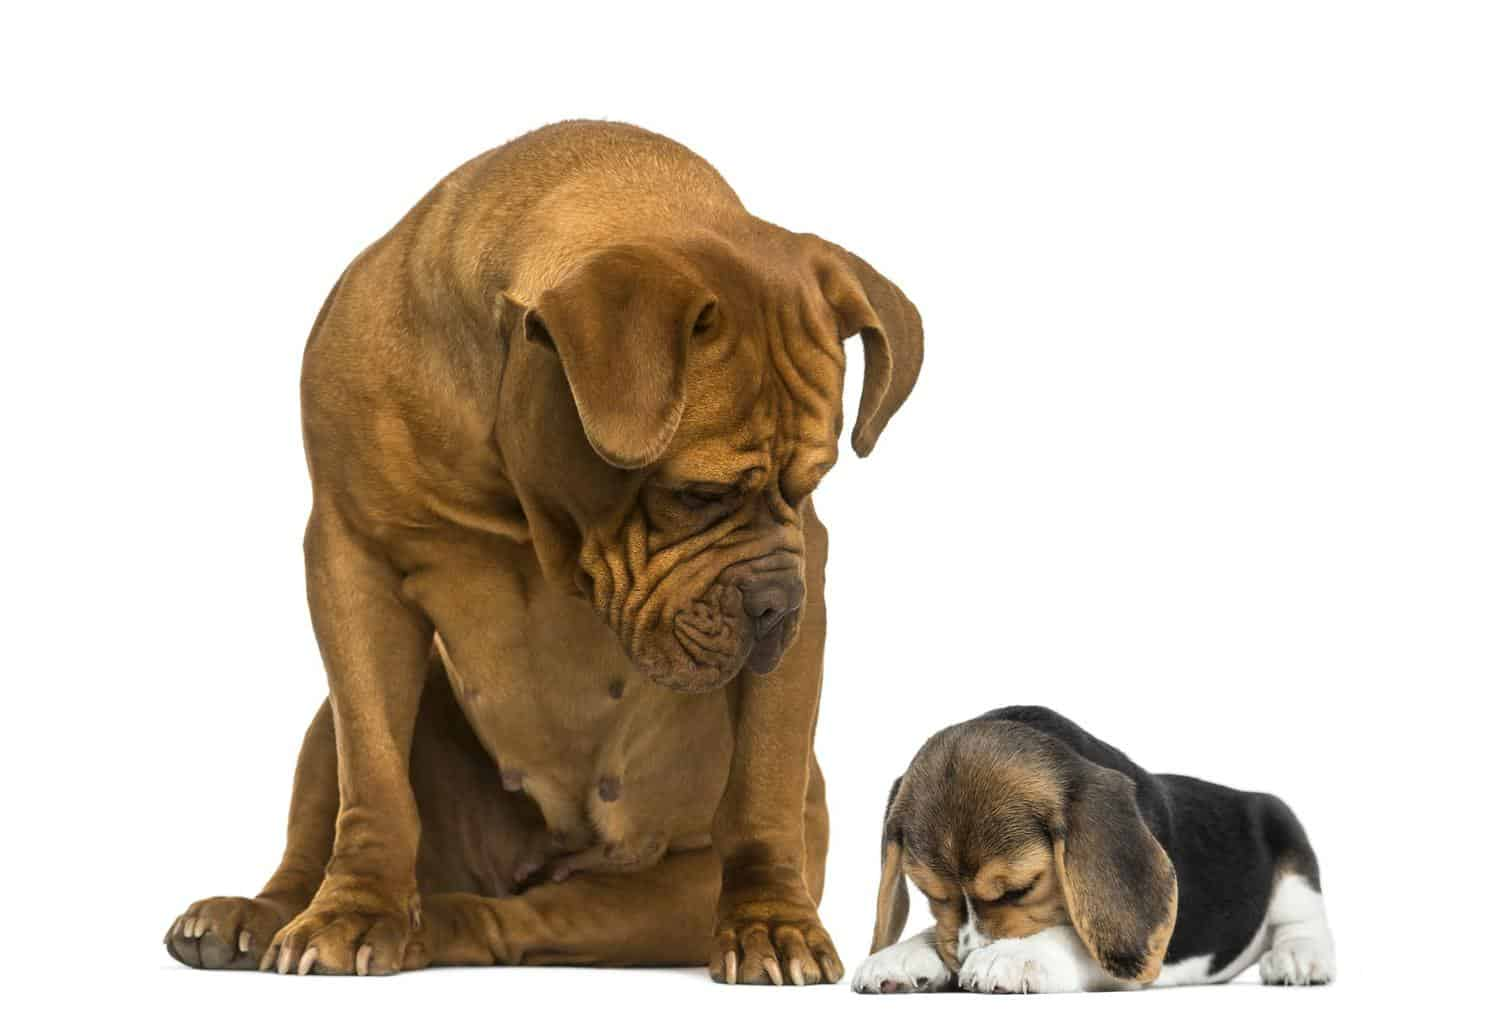 Dogue de Bordeaux sitting and looking at a embarrassed Beagle puppy